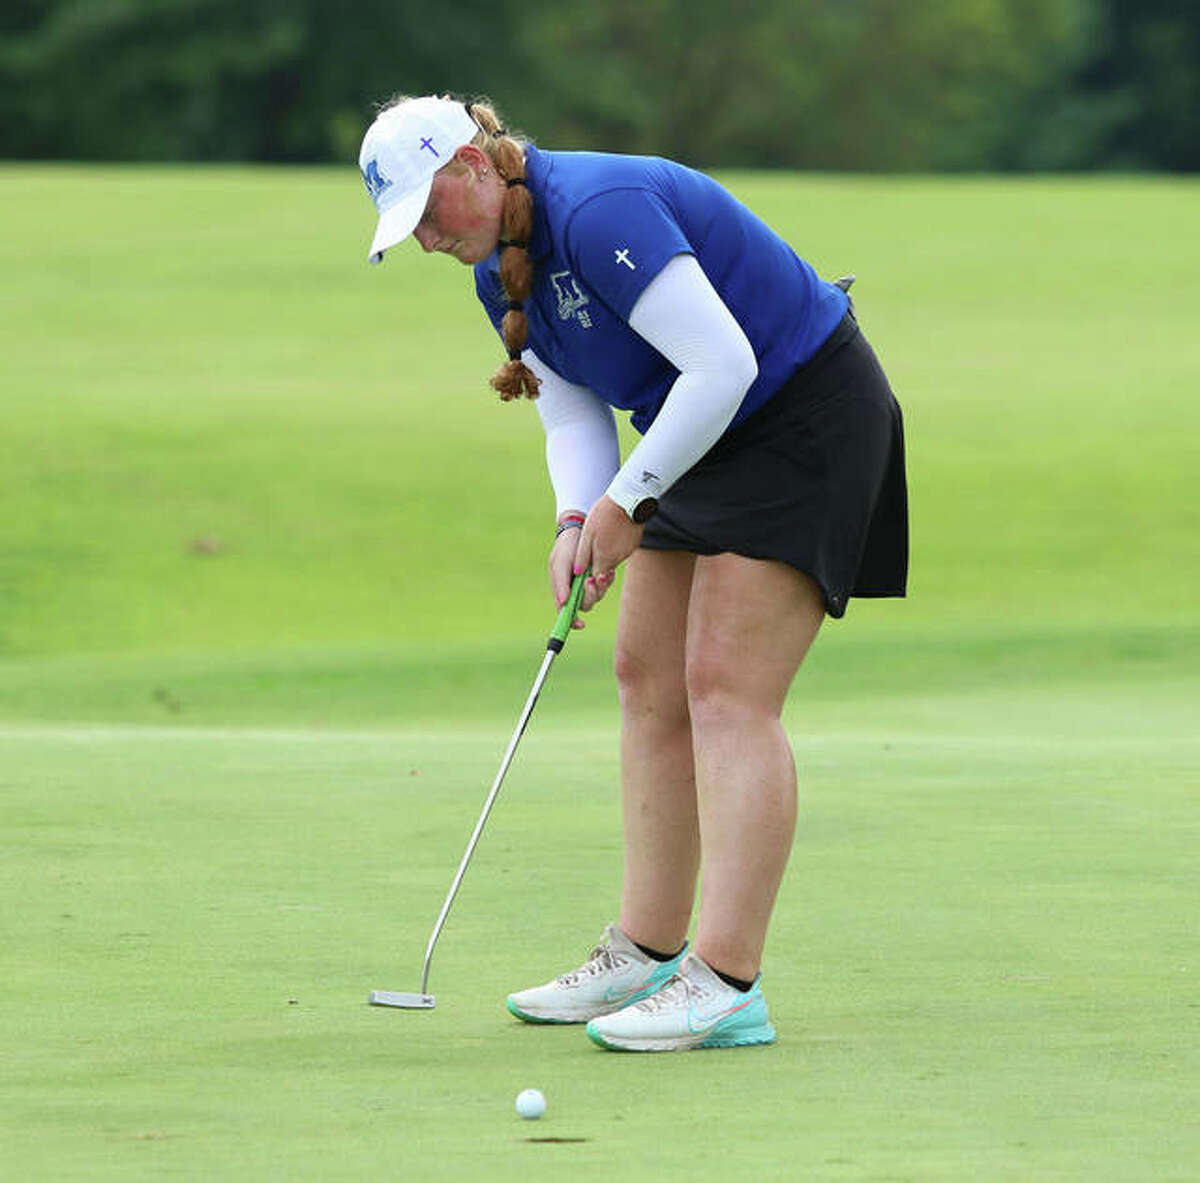 Marquette's Gracie Piar makes a short putt for birdie on hole No. 10 to start her school-record setting round of 6-under par 66 on Saturday at the Blast Off Tourney at Olin.